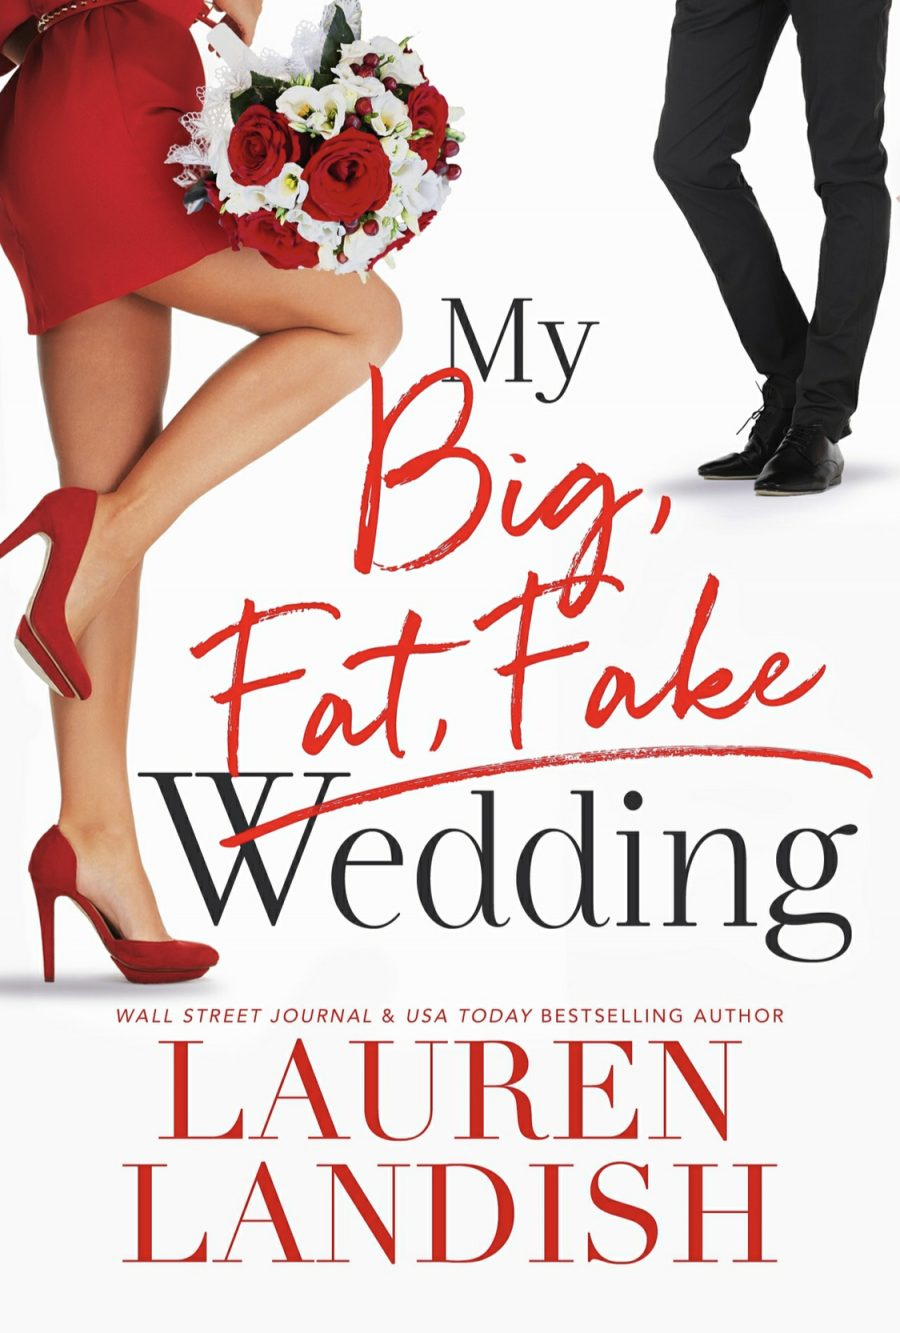 My Big Fat Fake Wedding by Lauren Landish - A Book Review #BookReview #Contemporary #ContemporaryRomance #HEA #KindleUnlimited #KU